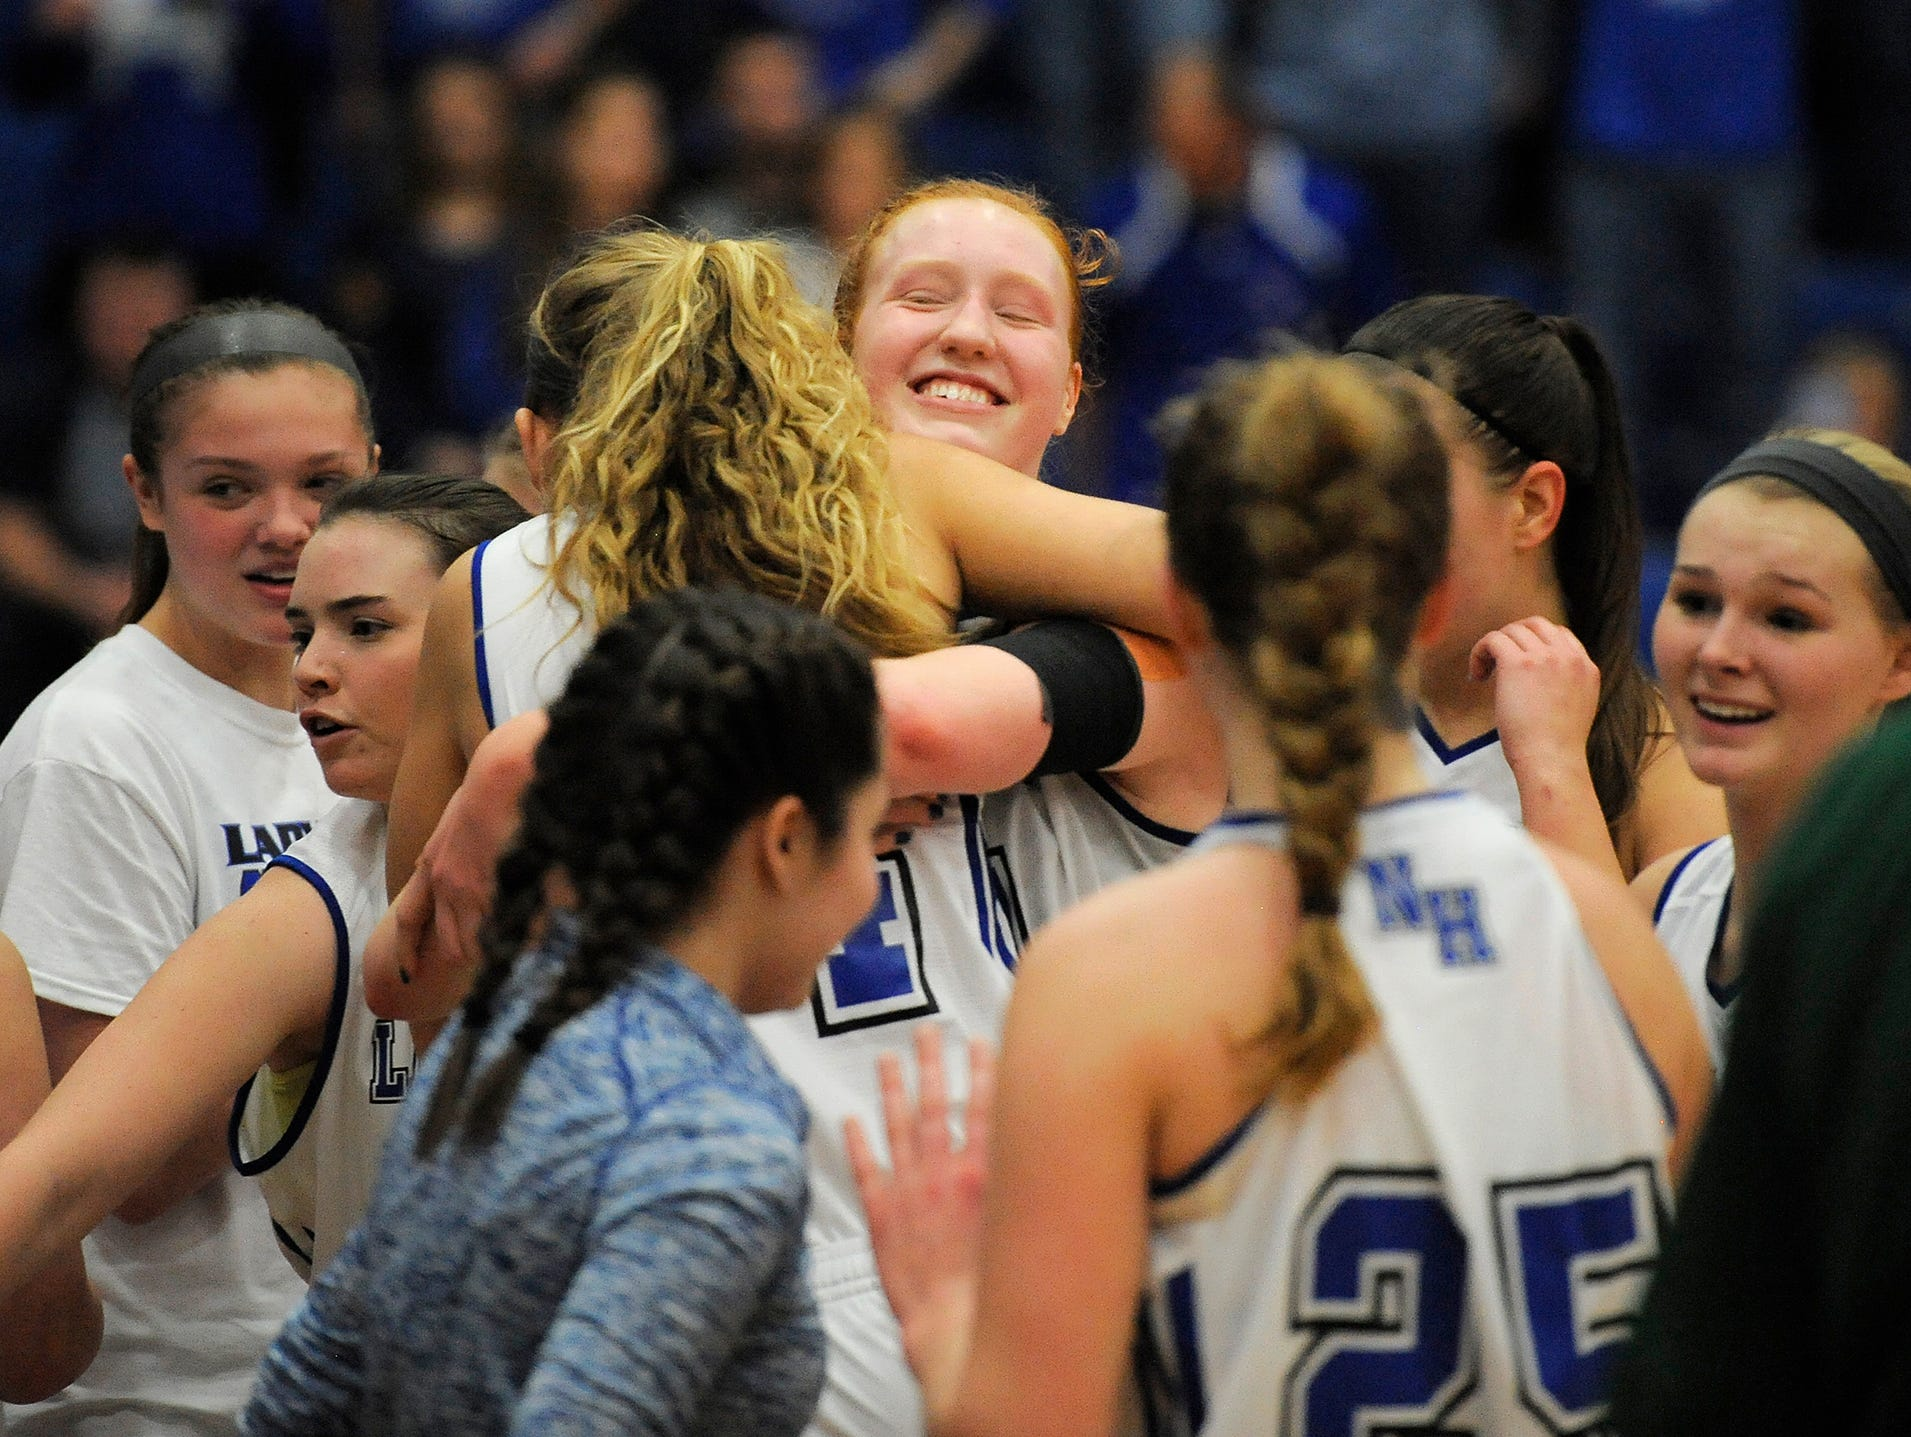 North Harrison's Lilly Hatton (center) is all smiles as the Lady Cats celebrate their 61-48 win over Vincennes-Lincoln on Saturday during the 3A Regional Final game at Charlestown High School. North Harrison won 61-48. (Photo by David Lee Hartlage, Special to The Courier-Journal) Feb. 11, 2017